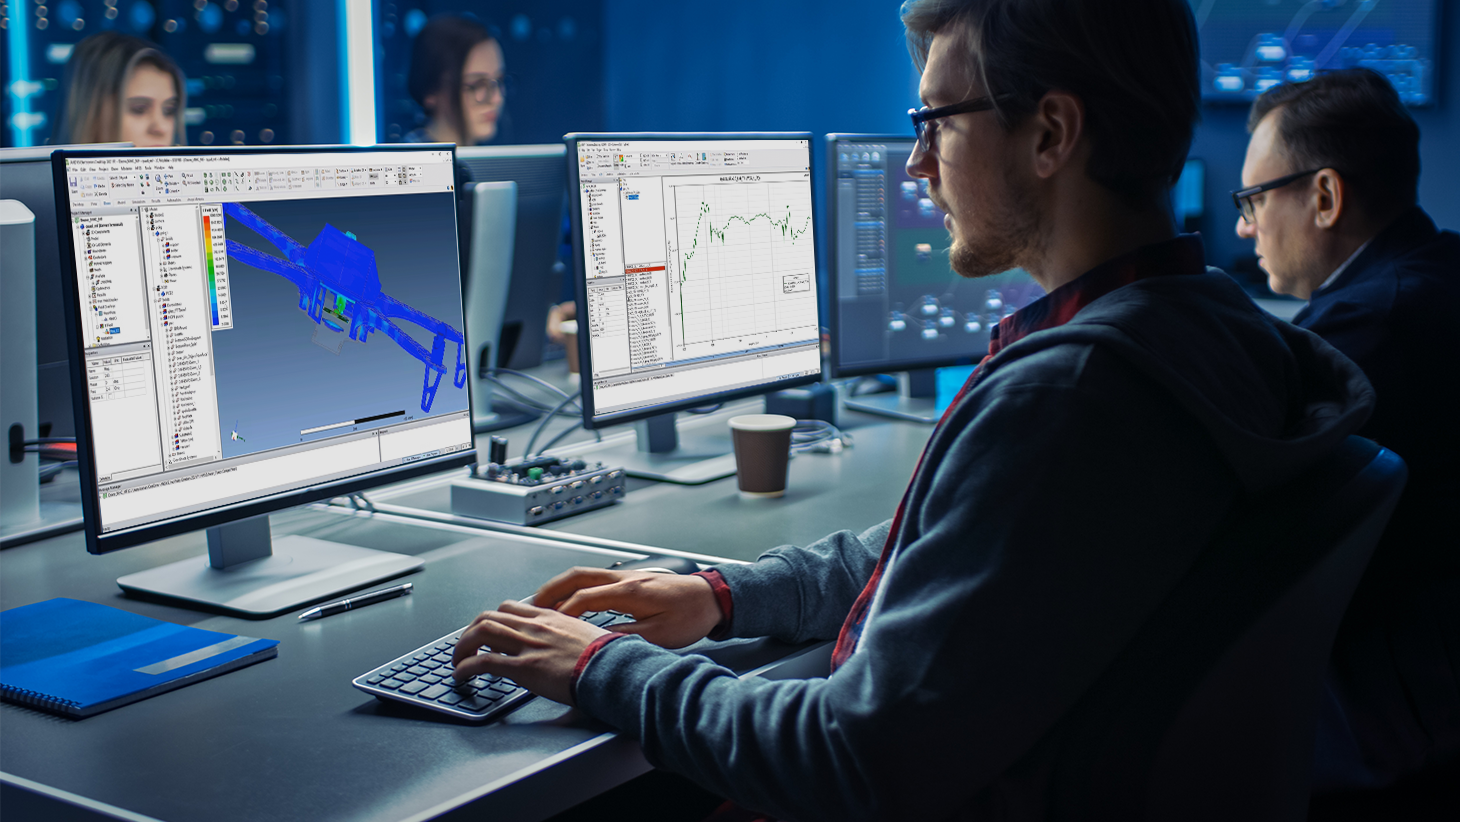 What is the importance of the engineer in computer simulation?